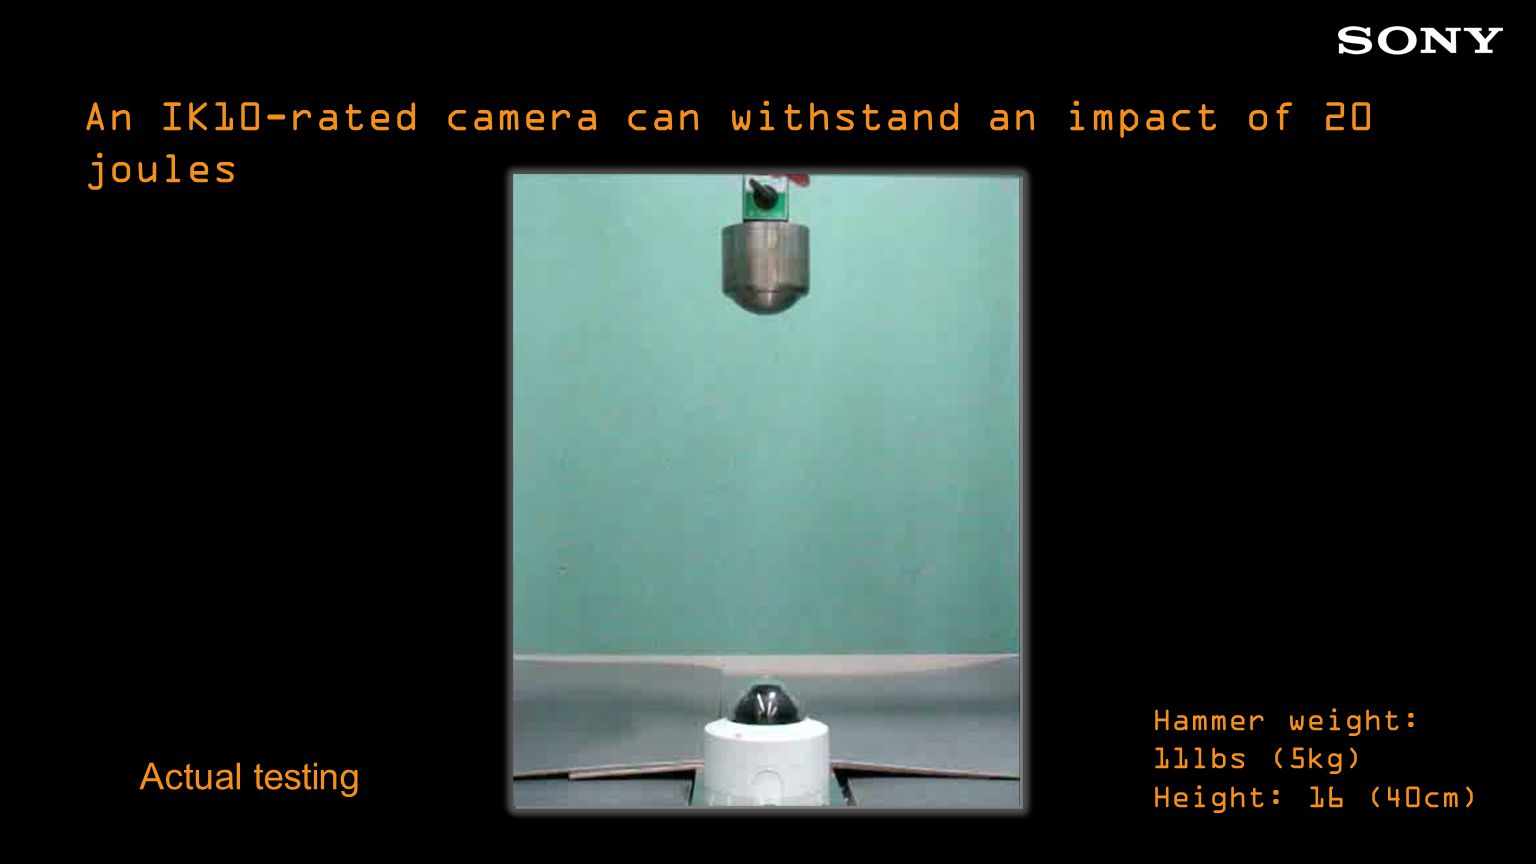 An IK10-rated camera can withstand an impact of 20 joules Actual testing Hammer weight: 11lbs (5kg) Height: 16 (40cm)